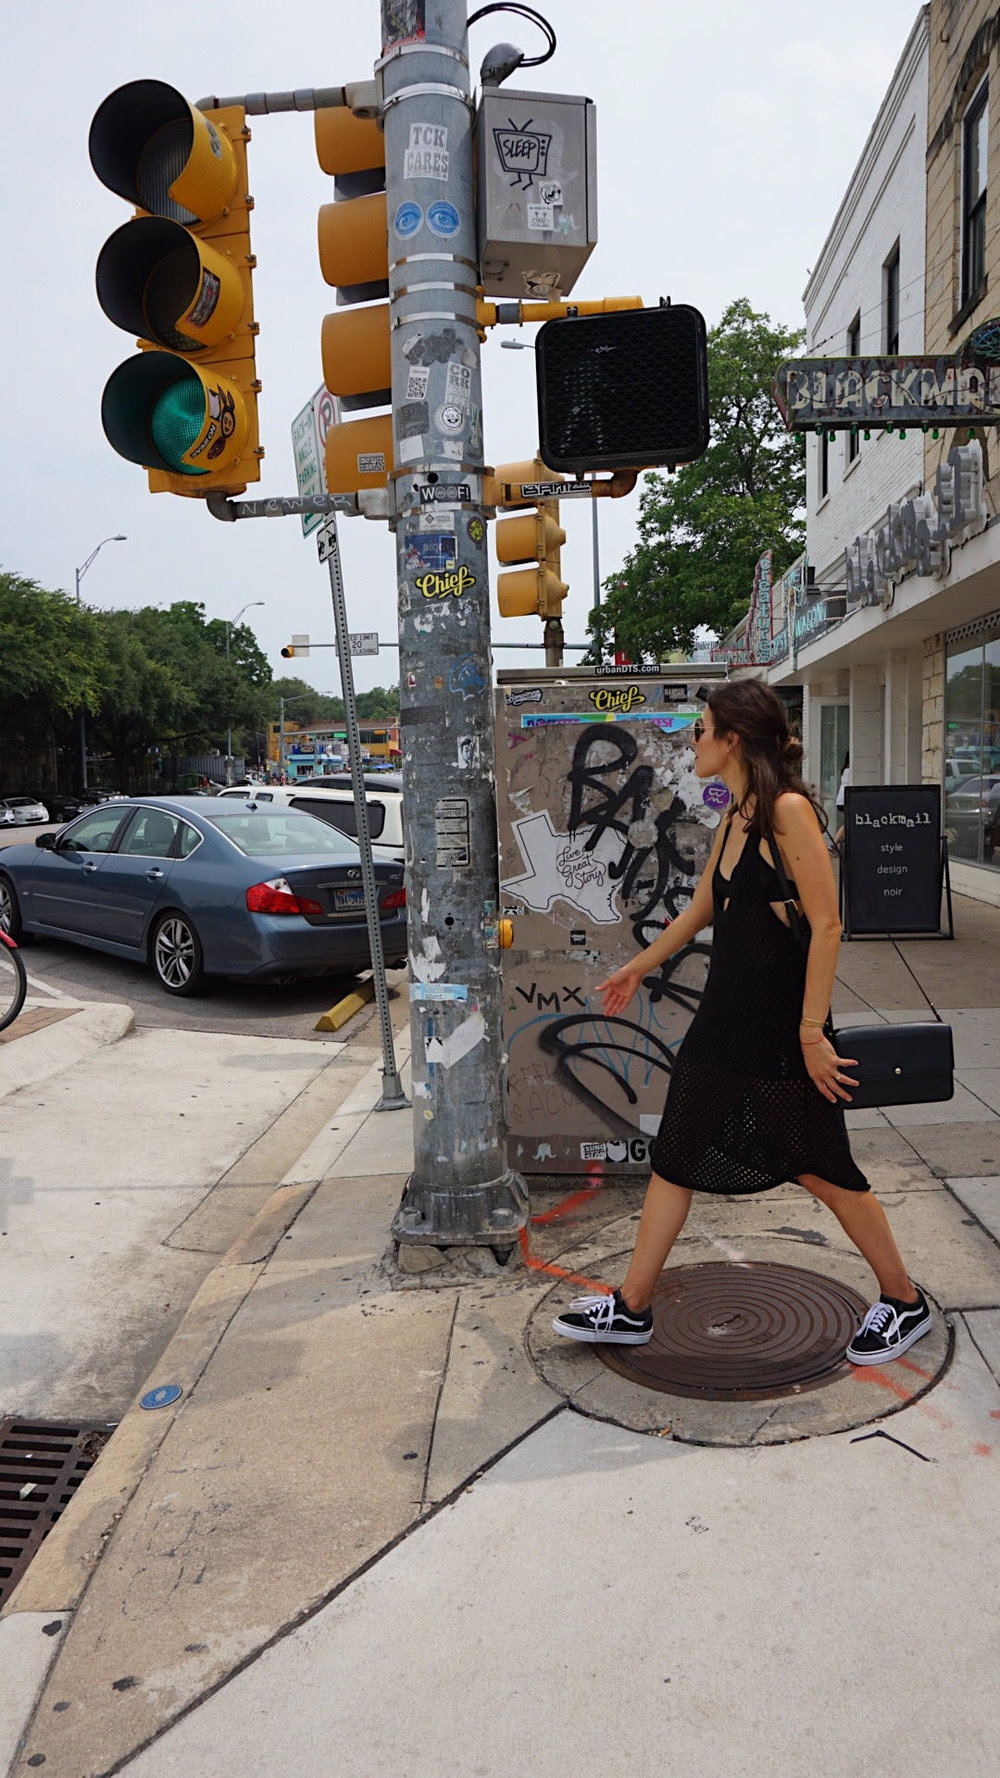 Walking - I love that you can ride your bike or walk to different spots in most areas here in Austin. So you can walk to the pizzeria, stuff your face and walk back home and not feel as bad...lol. Walk those calories off!